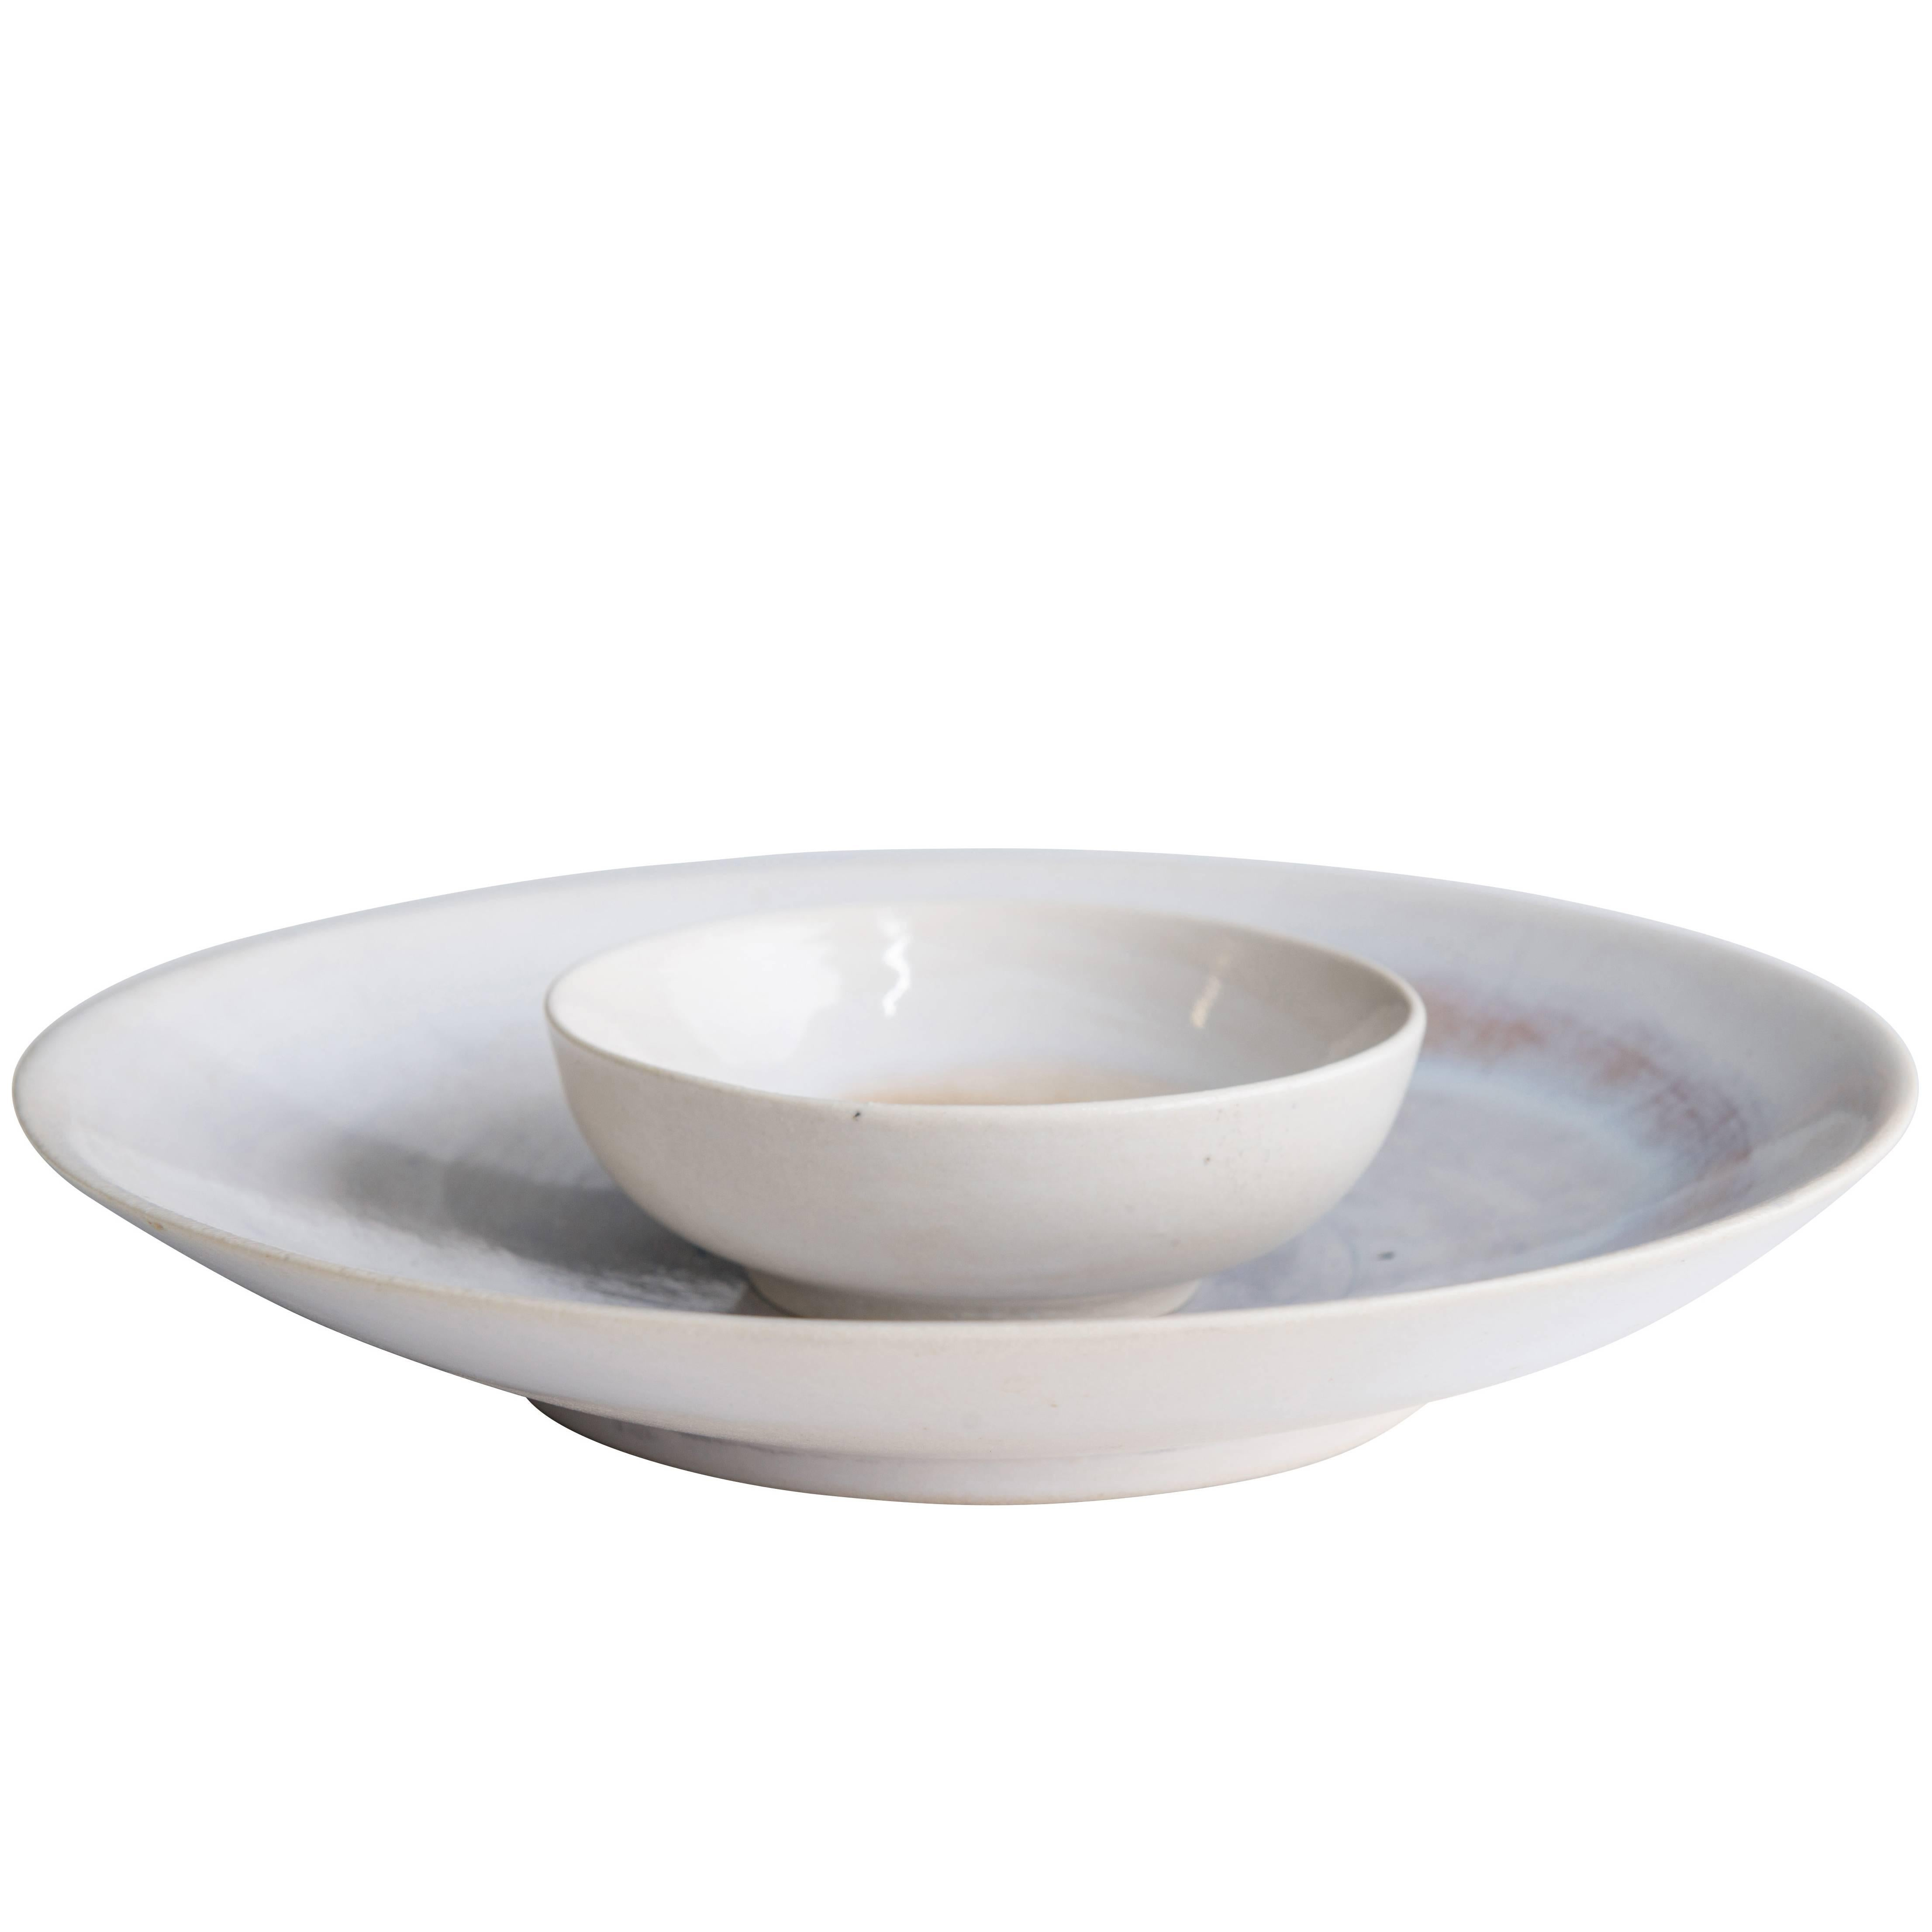 Two Ceramic Bowls by Georges Jouve